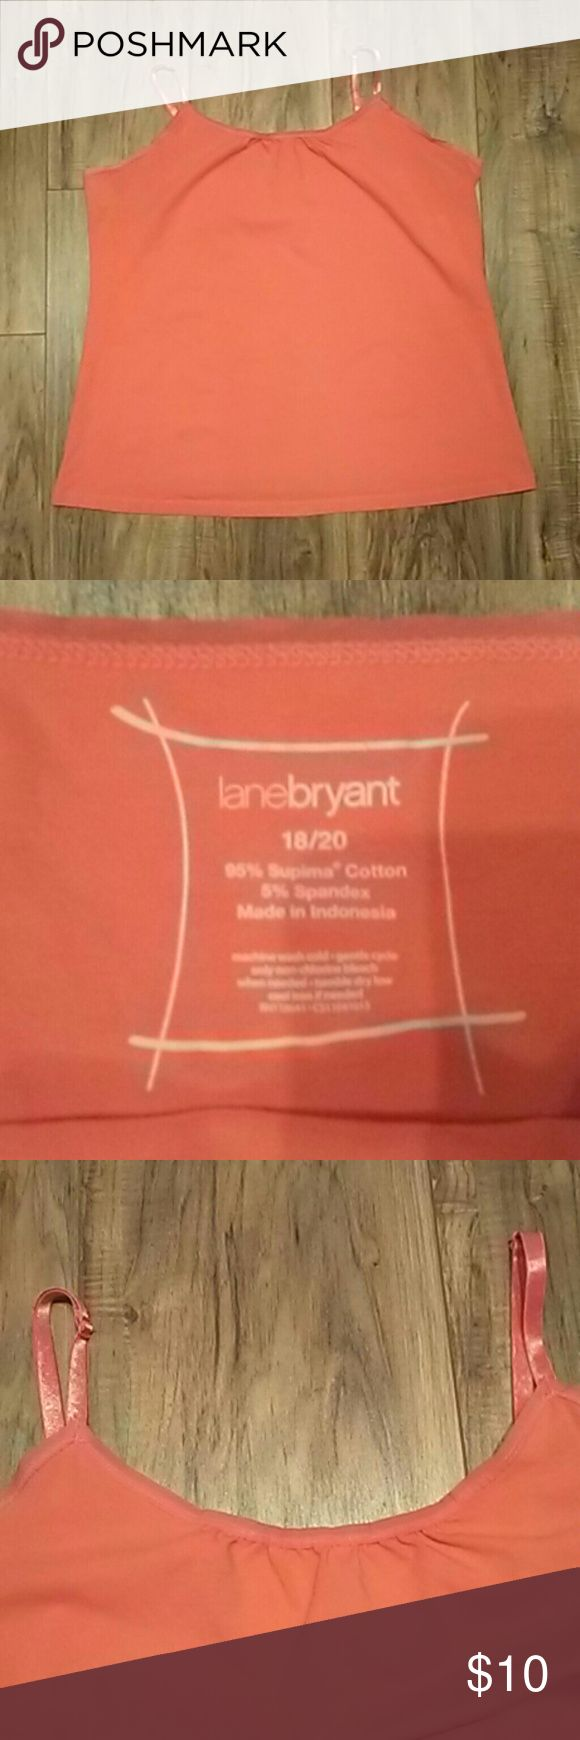 Lane Bryant 18/20 Orange Cami Lane Bryant 18/20 Orange Cami with adjustable straps.  ??Please take a look at my other items all Lane Bryant cloths below $15.?? Lane Bryant Tops Camisoles